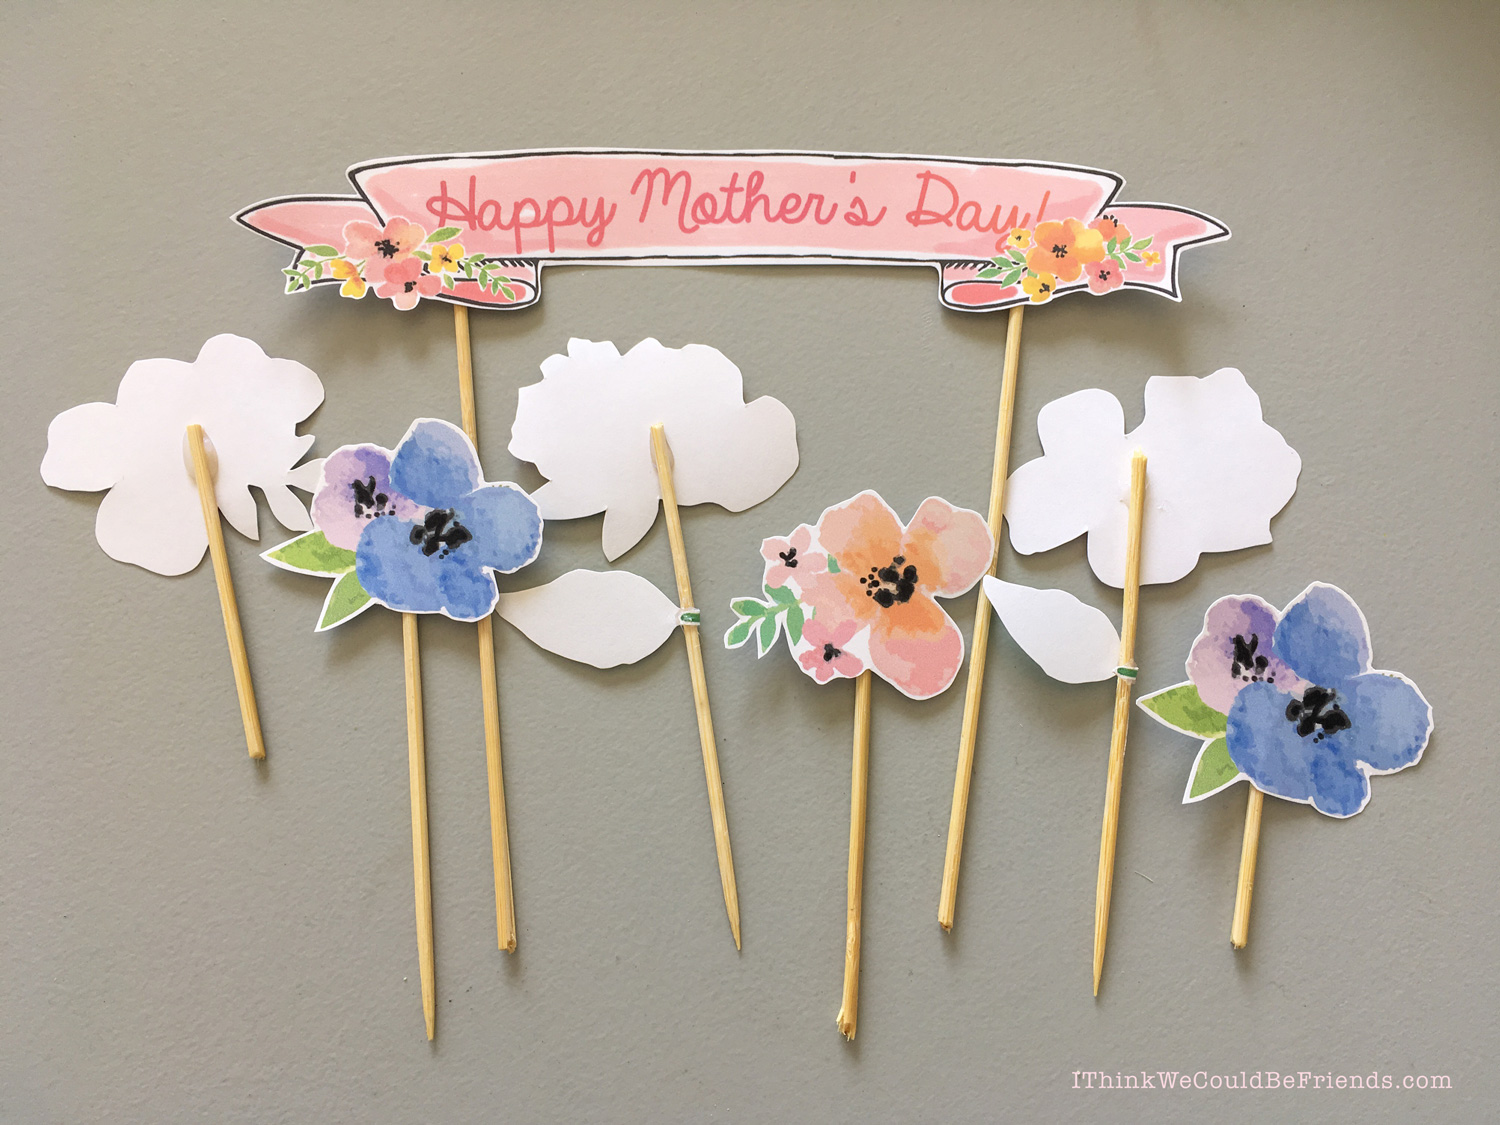 mother s day cake ideas free printable floral cake topper decoration. Black Bedroom Furniture Sets. Home Design Ideas